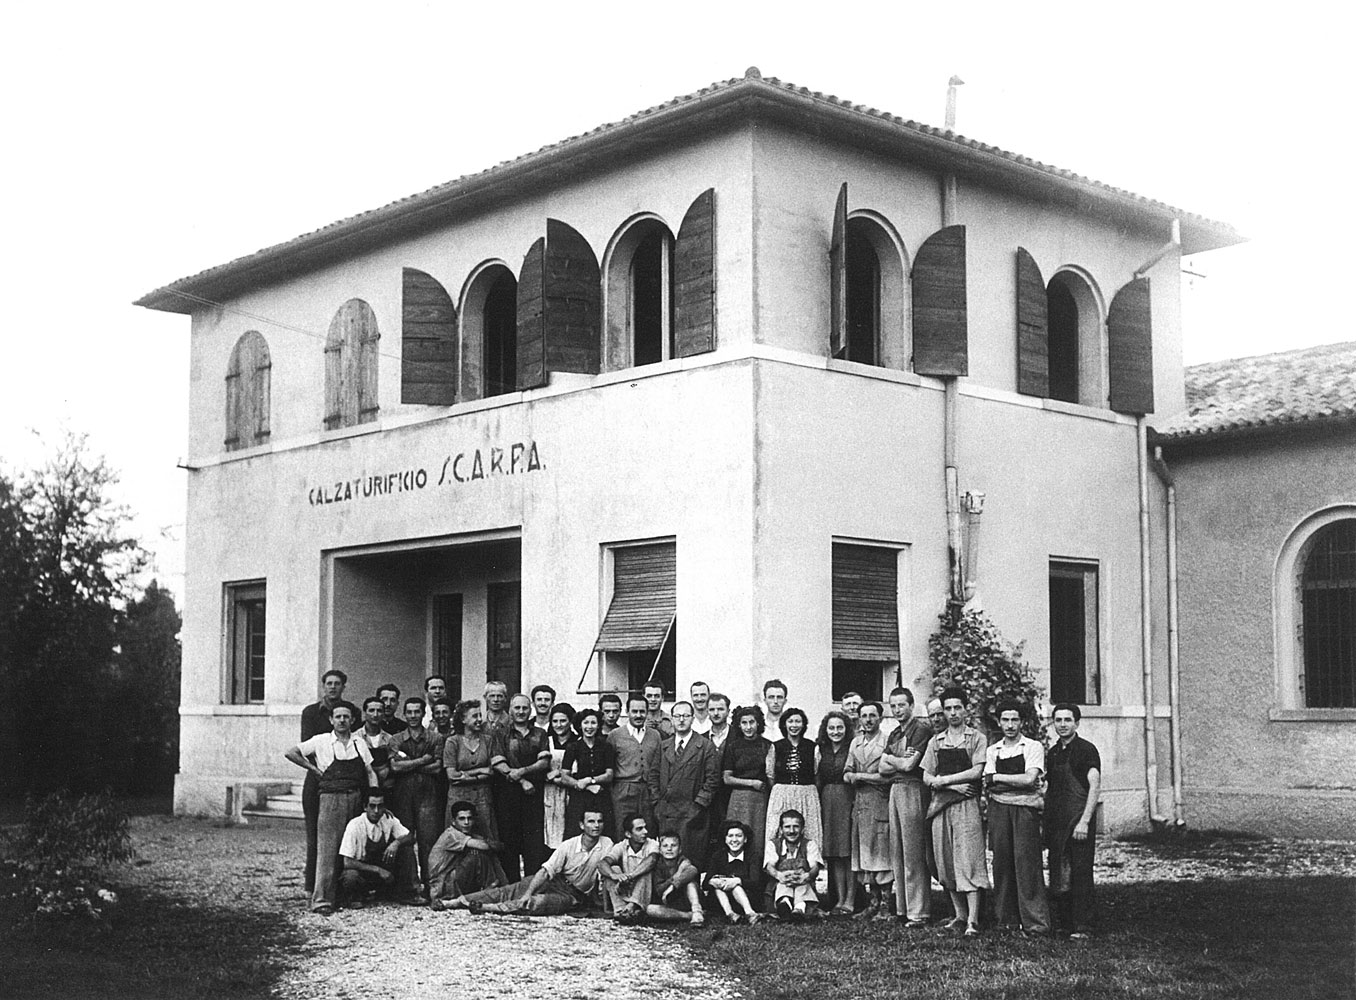 <span><b>1950s</b>After world war two in the area many outdoor footwear companies started doing business between Asolo and Montebelluna.</span>